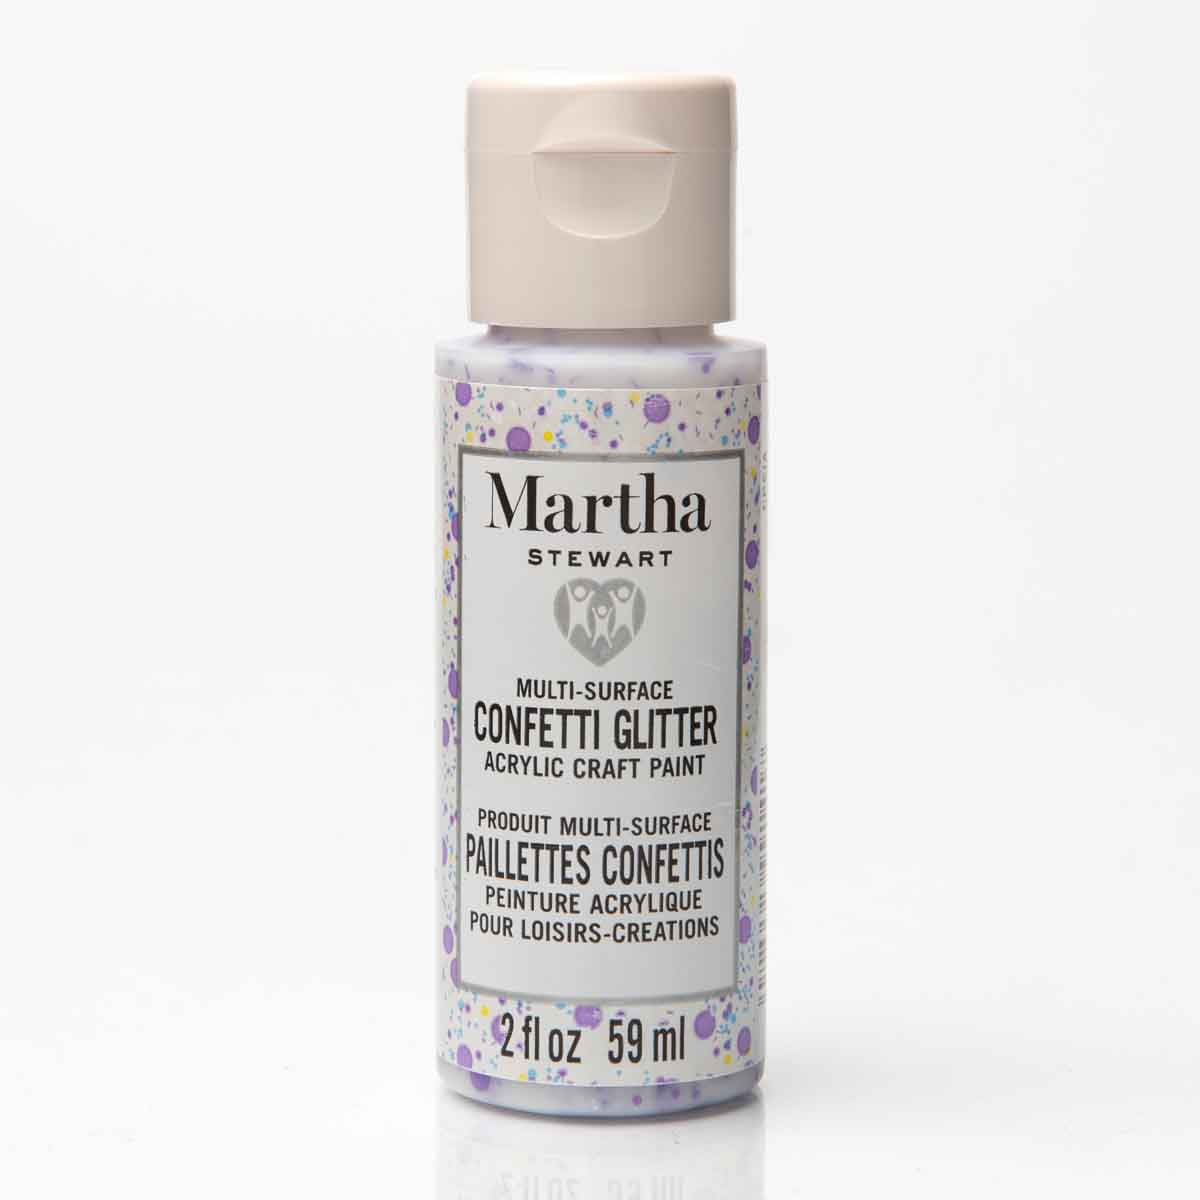 Martha Stewart ® Family Friendly Multi-Surface Glitter Acrylic Craft Paint 6-Color Best of Paint Set